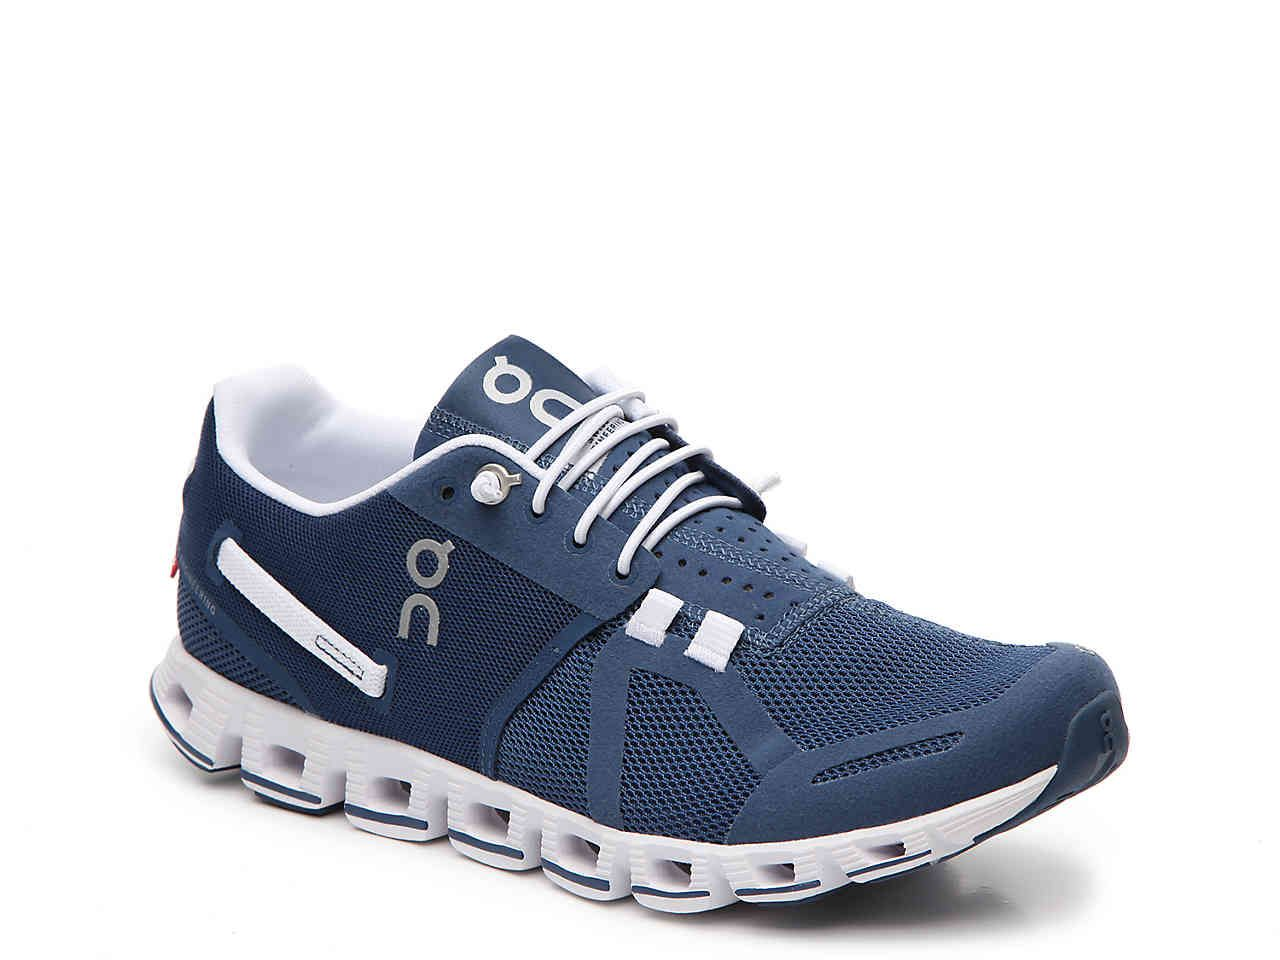 Women/'s Low Top Sneaker Fashion Lace Up Canvas Sneakers Shoes Classic Walking Shoes for Women